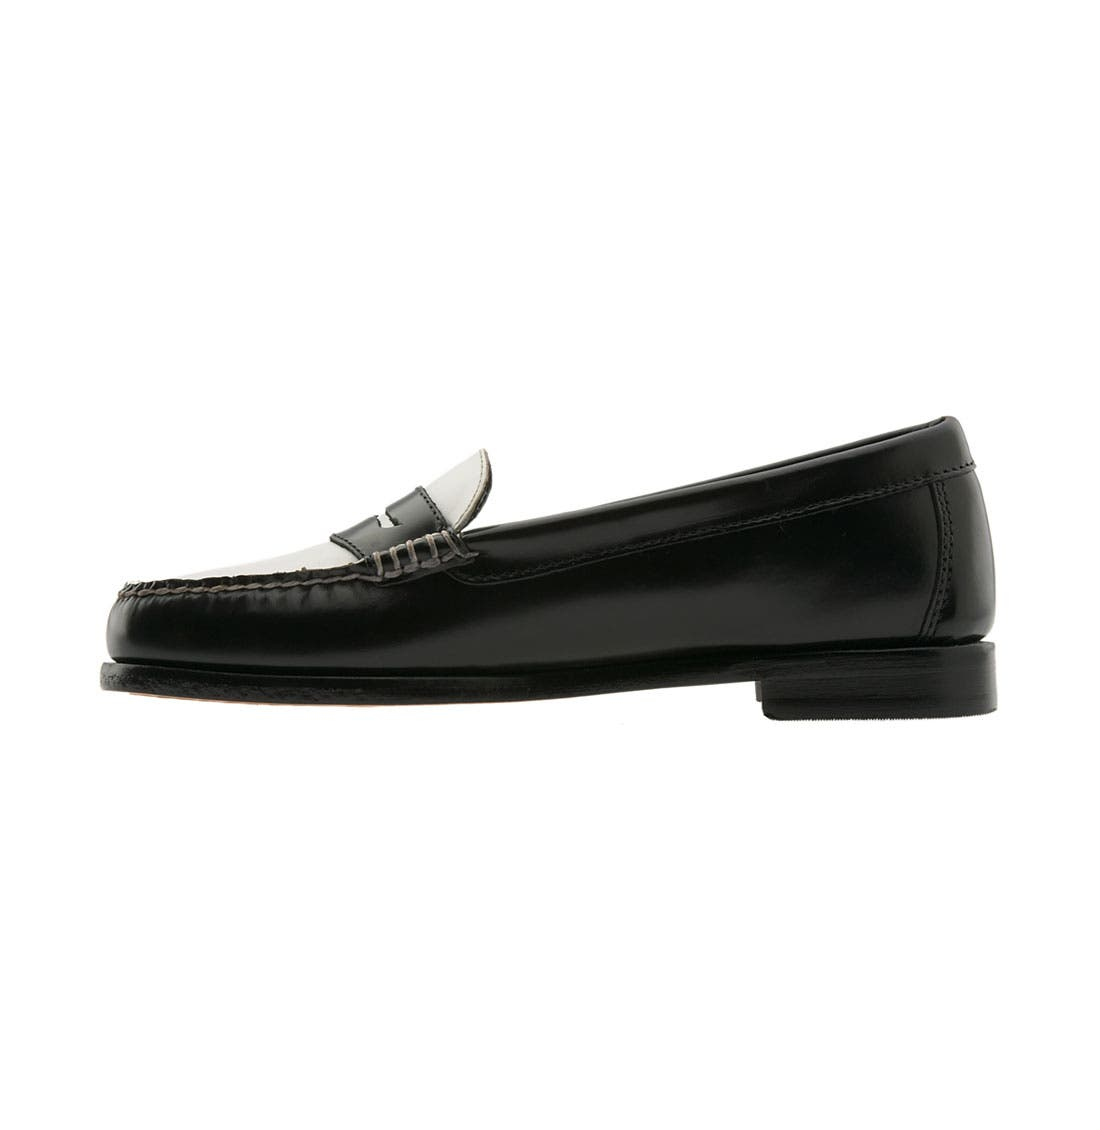 Alternate Image 2  - G.H. Bass & Co. 'Wayfarer' Loafer (Women)